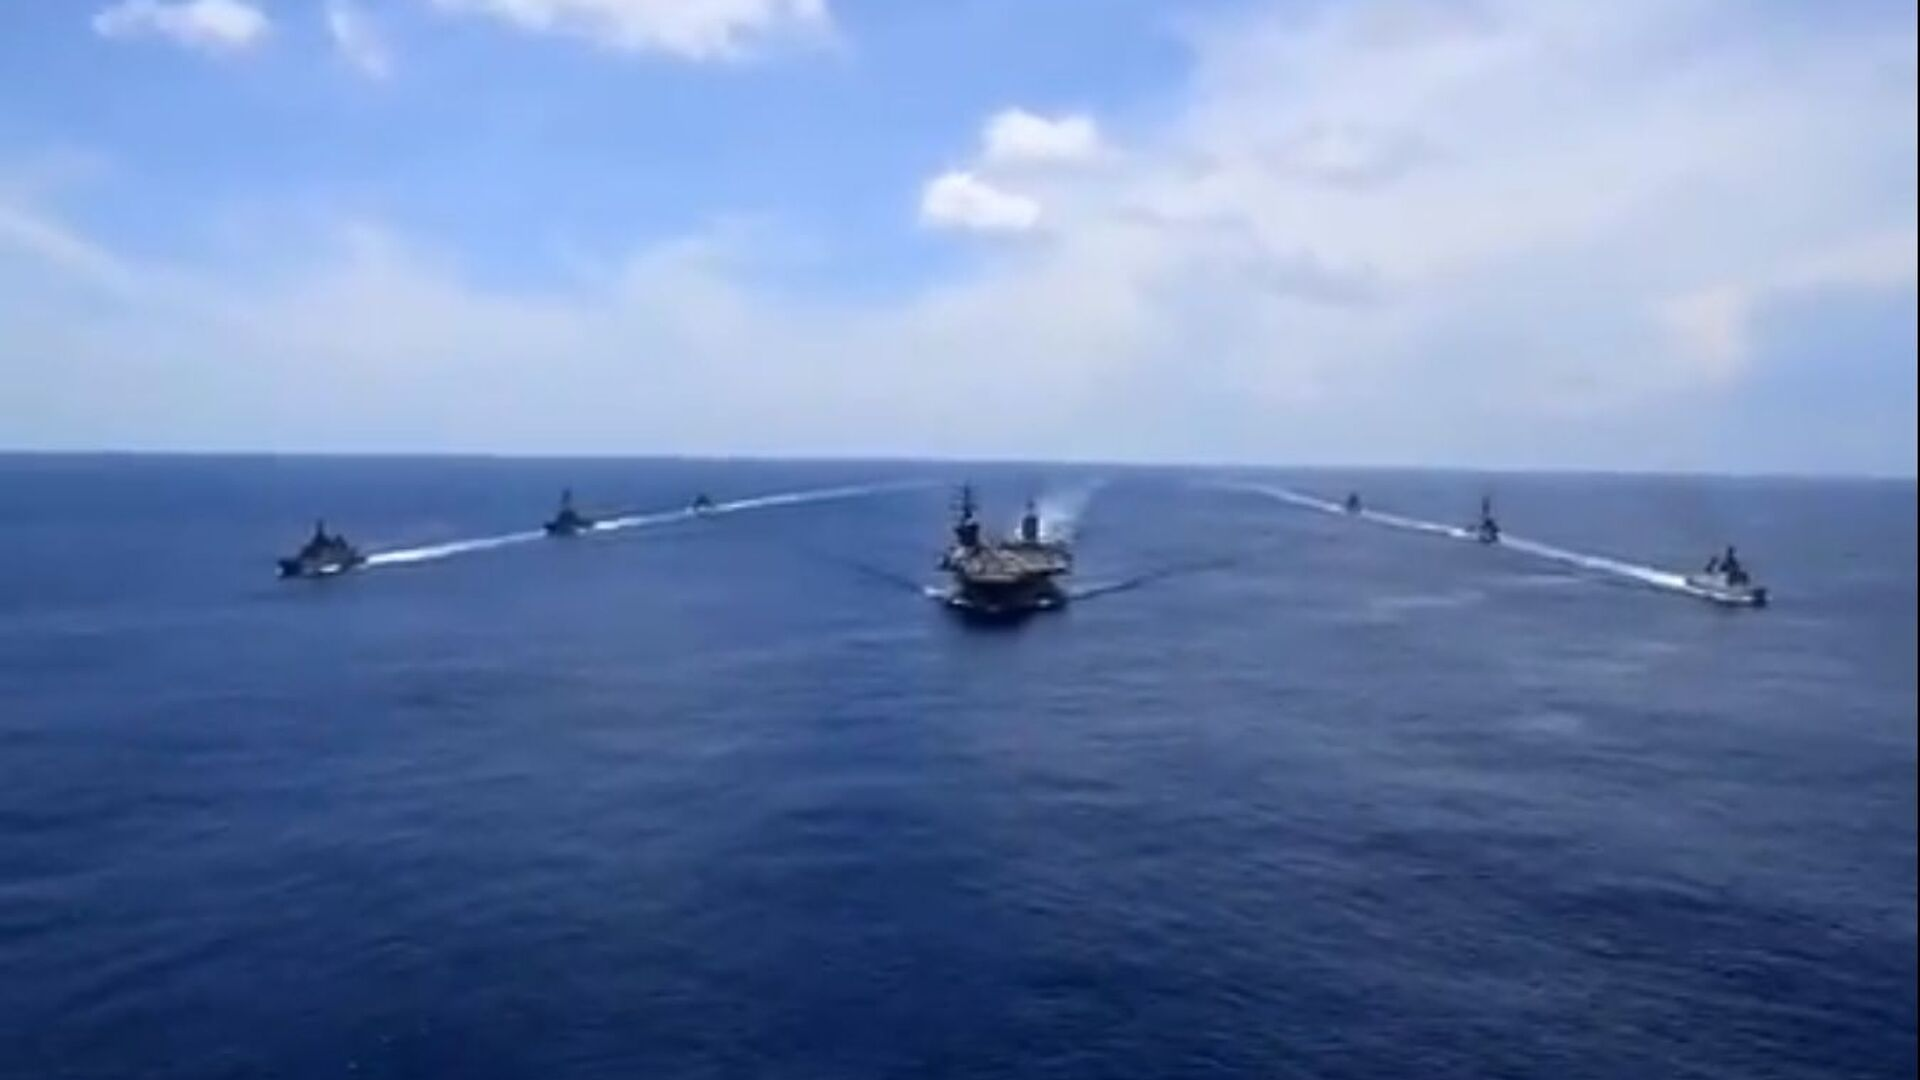 The United States has been mobilising its naval assets in the South China Sea in solidarity with its allies and partners against China flexing its muscles. The US has deployed several aircraft carriers and guided missile destroyers to the Indo-Pacific region. - Sputnik International, 1920, 17.09.2021